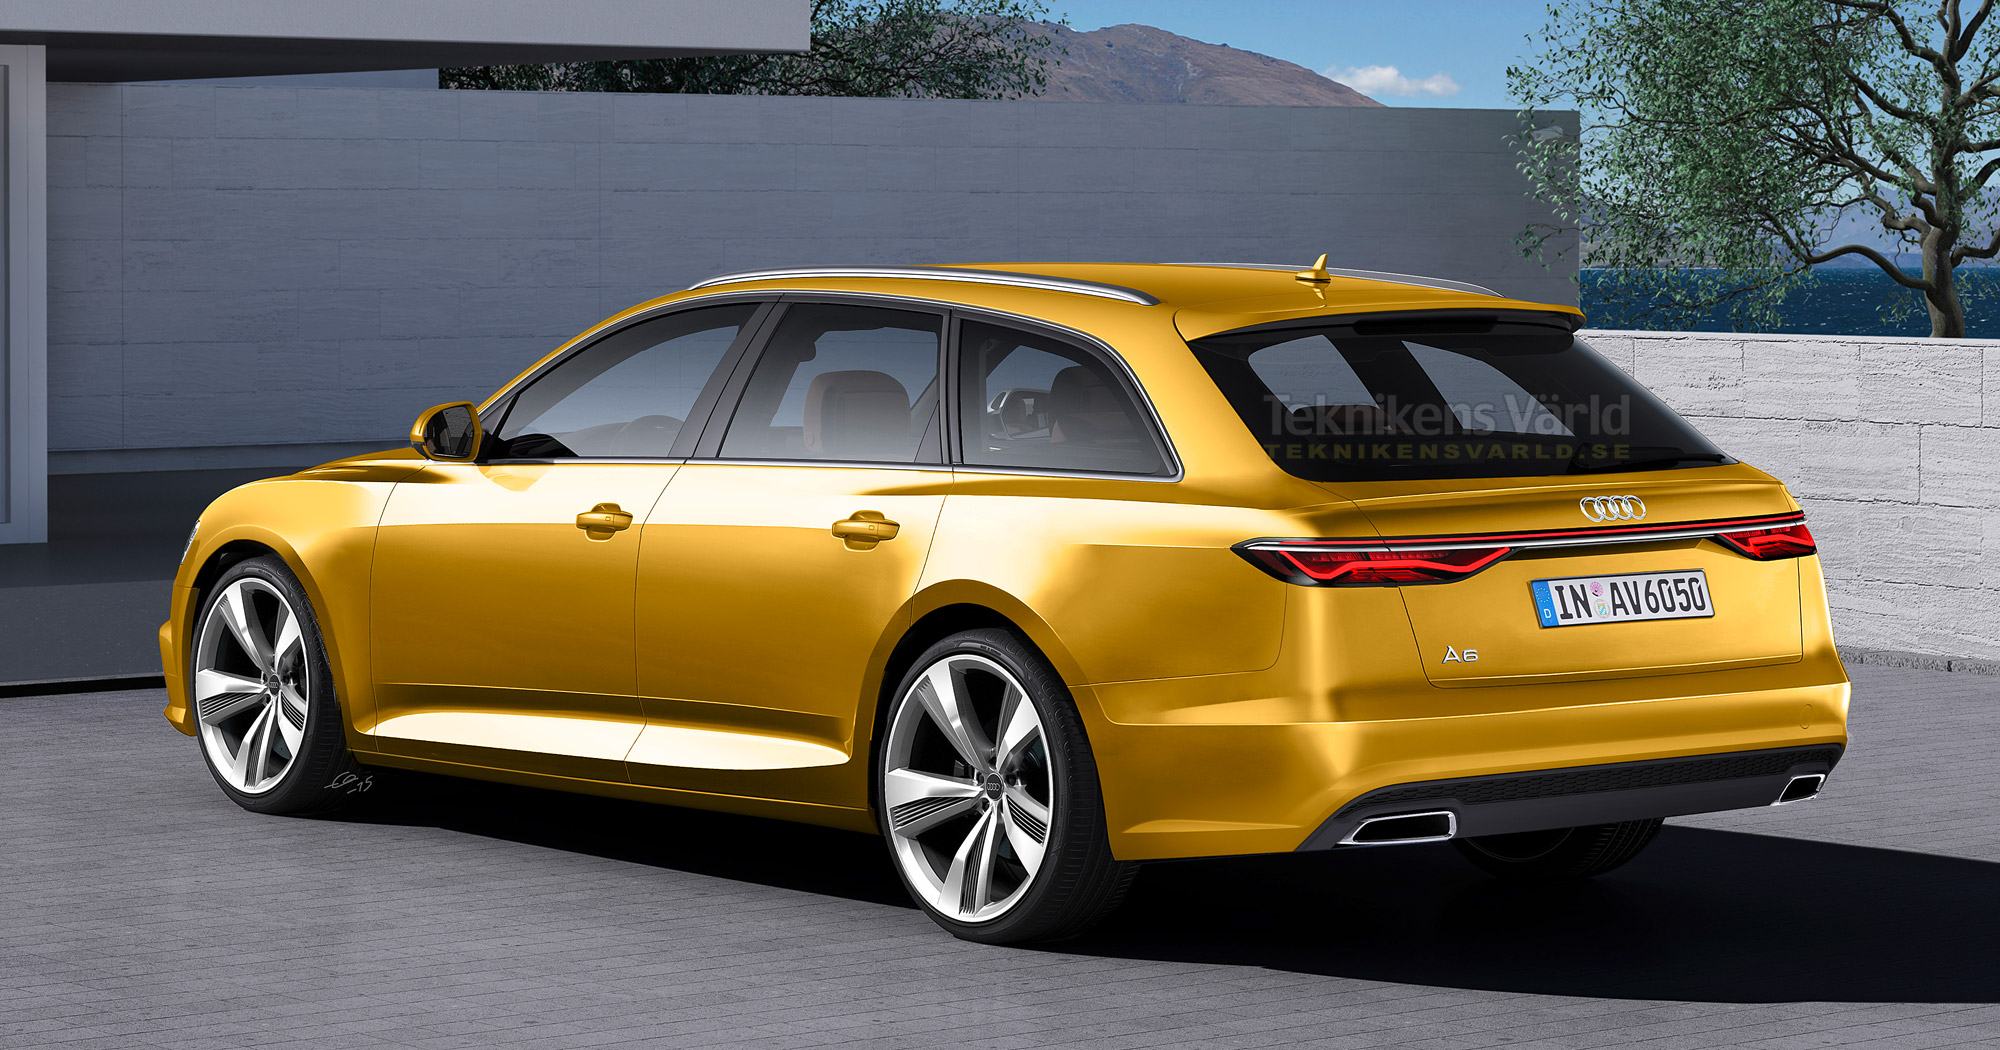 2018 Audi A6 Avant Car Photos Catalog 2018